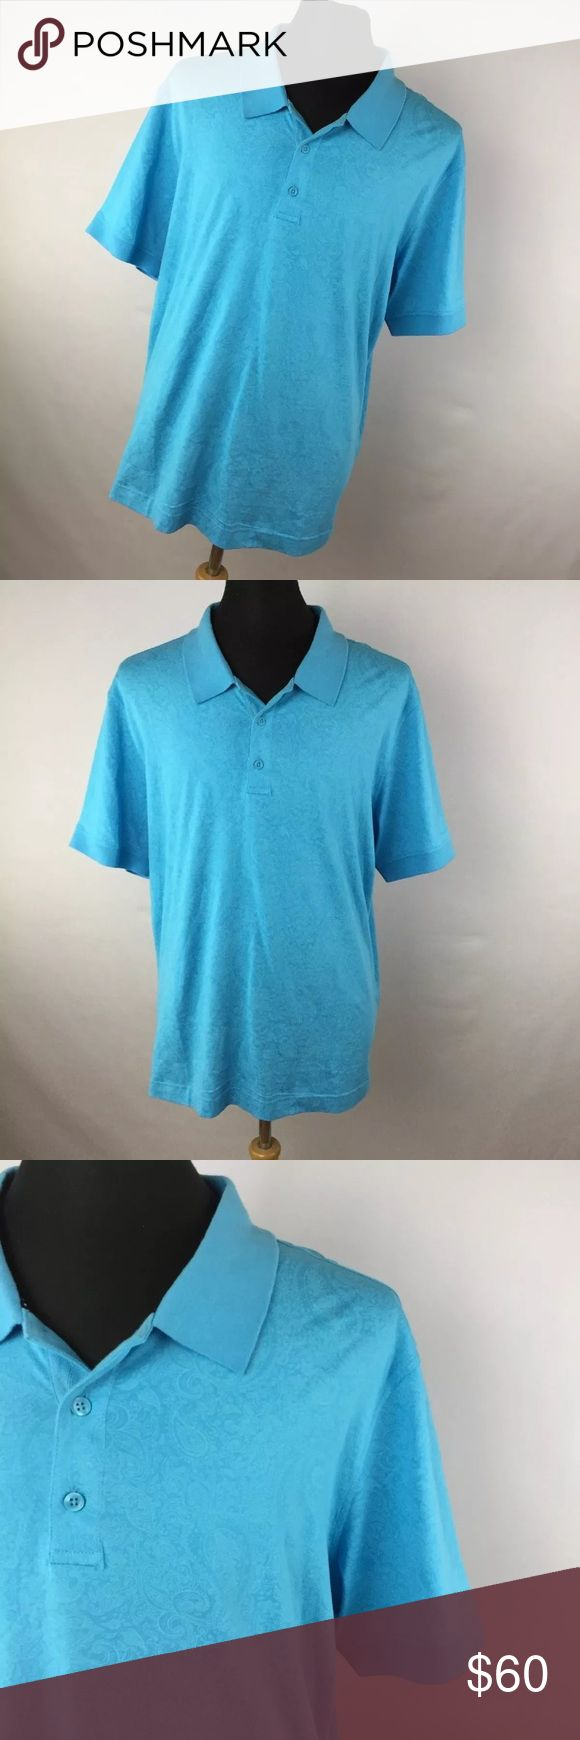 "New Robert Graham 2XL XXL Shirt Pebbles Aqua Blue New Robert Graham 2XL XXL Shirt Pebbles Aqua Blue Paisley Men's Short Sleeve. New without tags. Smoke free home. Chest measurement  - 50"" Length measurement - 31"" Robert Graham Shirts Polos"